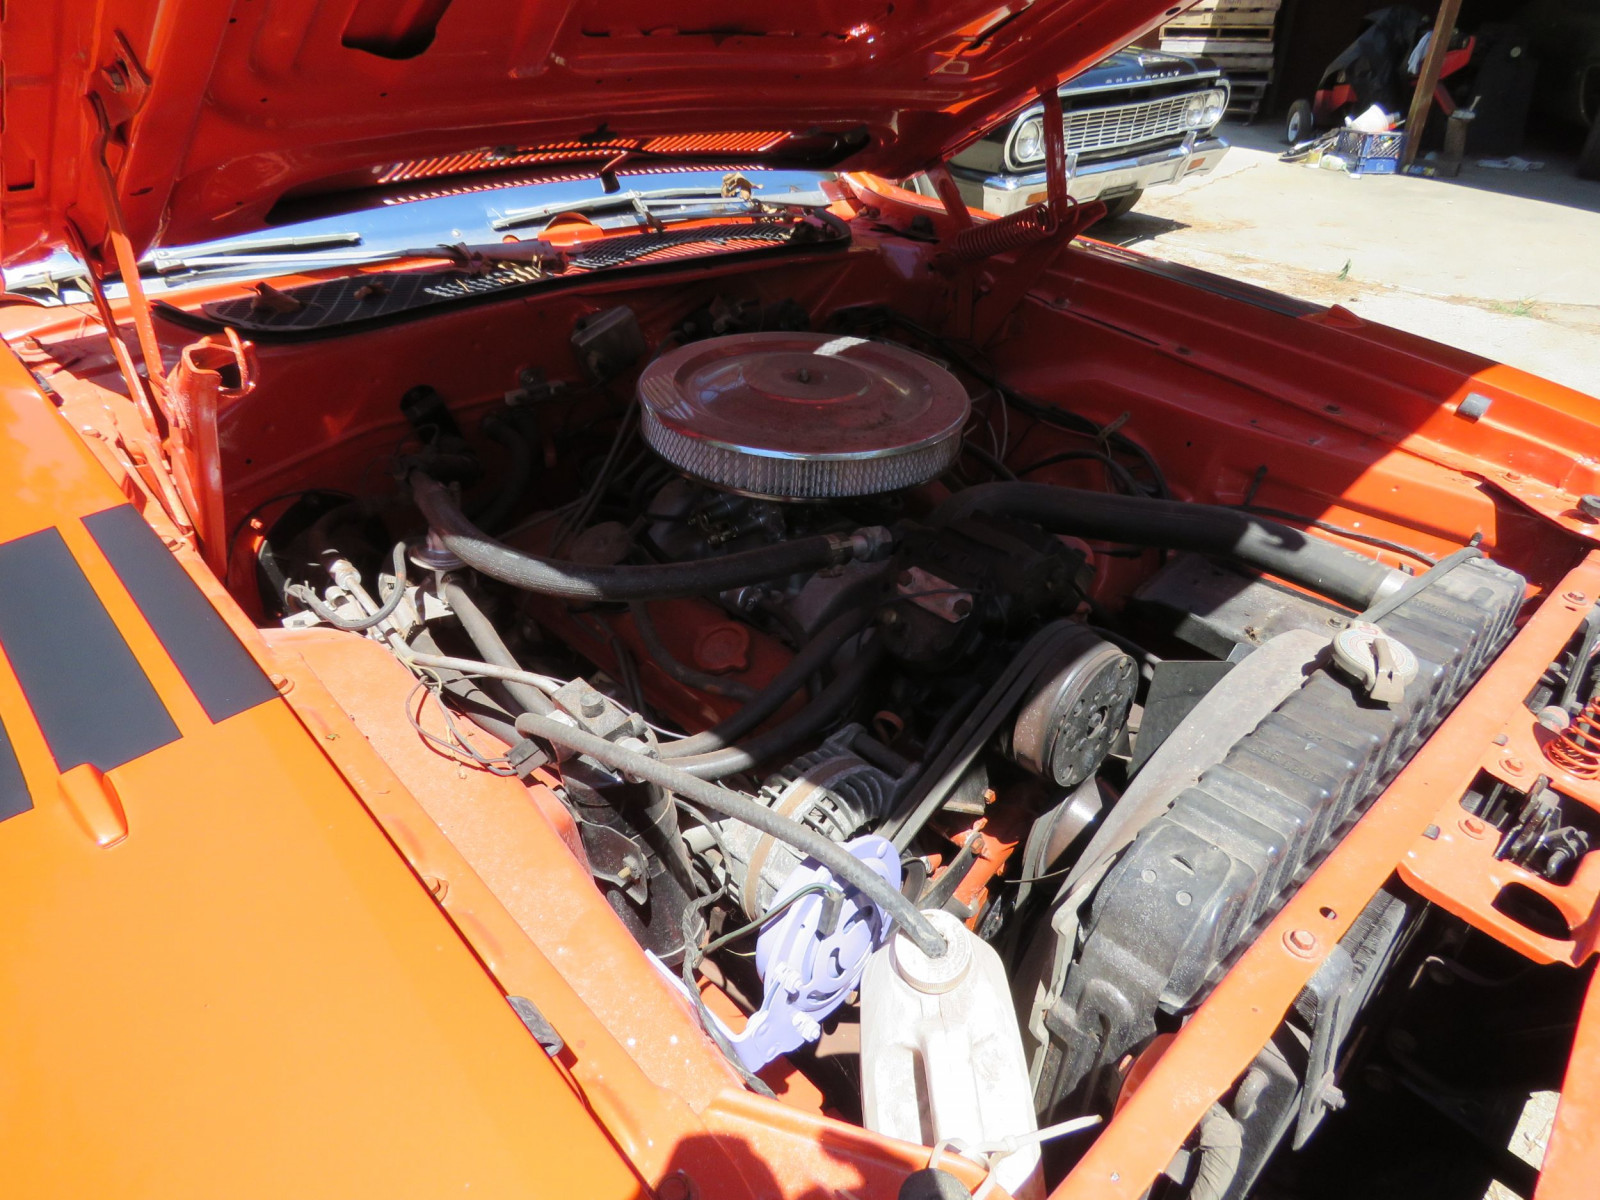 1971 Plymouth Satellite 2dr HT - Image 15